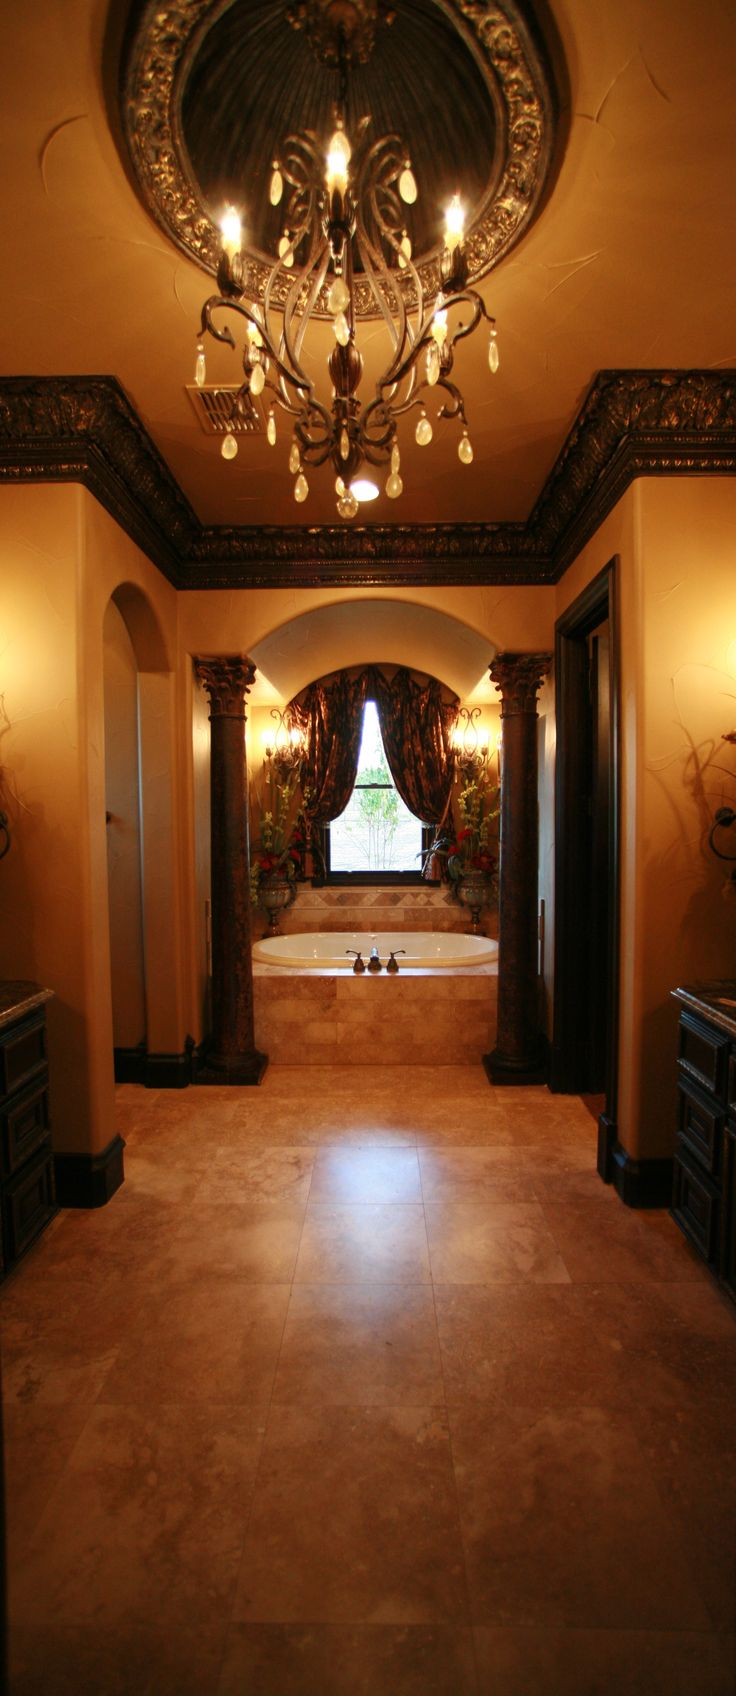 find this pin and more on interior design old worldtraditionaltuscan bathrooms and powder rooms - Tuscan Bathroom Design